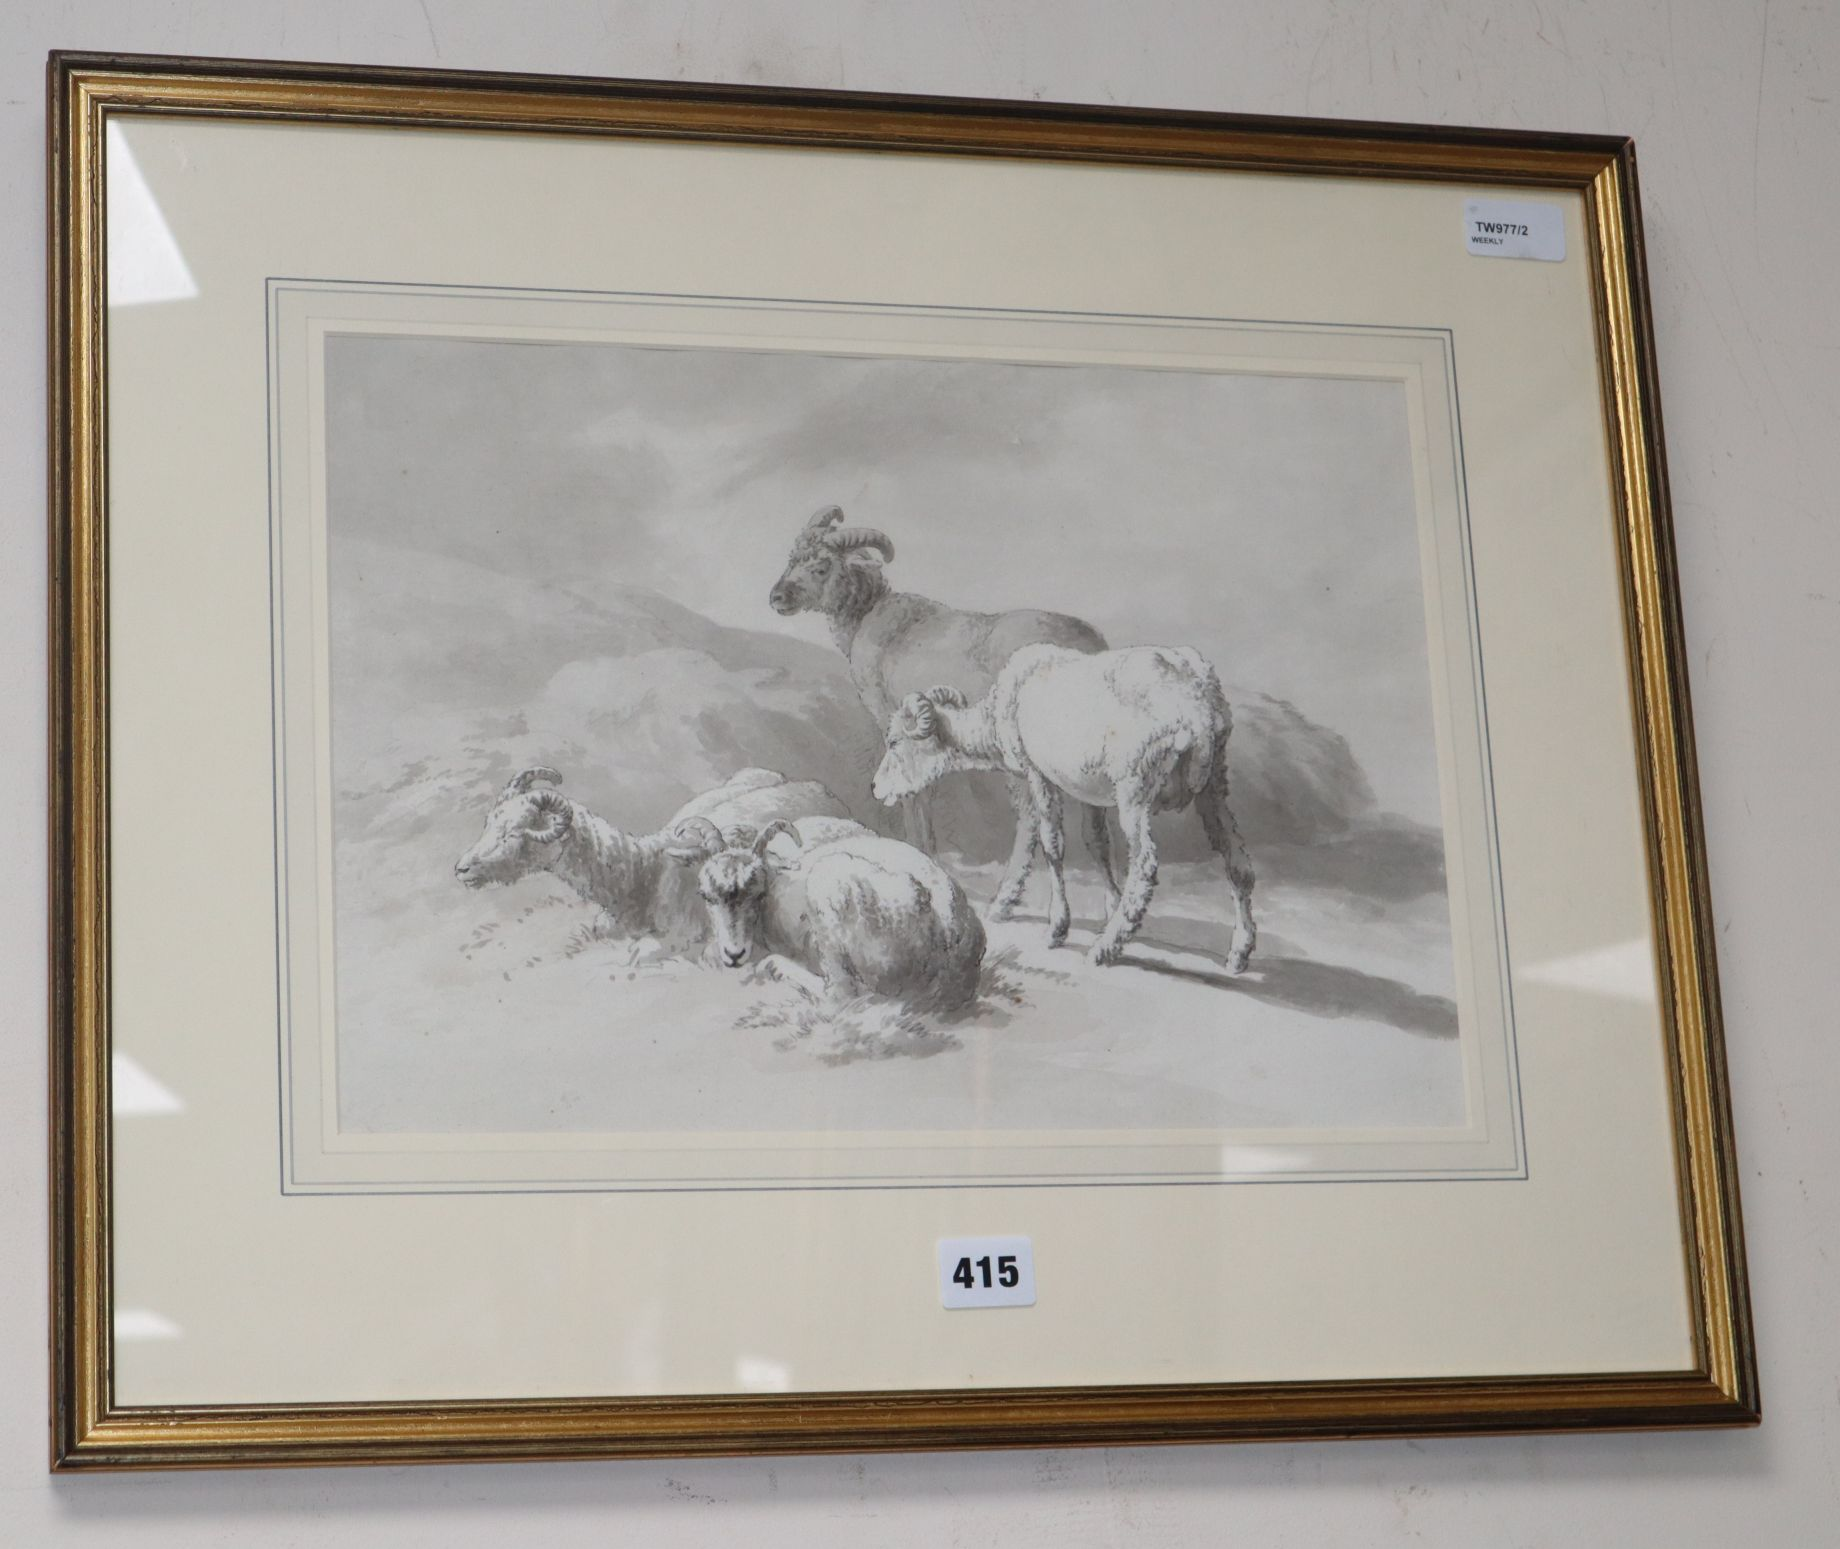 Lot 415 - Attributed to Robert Hills Ows (1769-1844), study of goats, pencil and wash, Abbott & Holder label